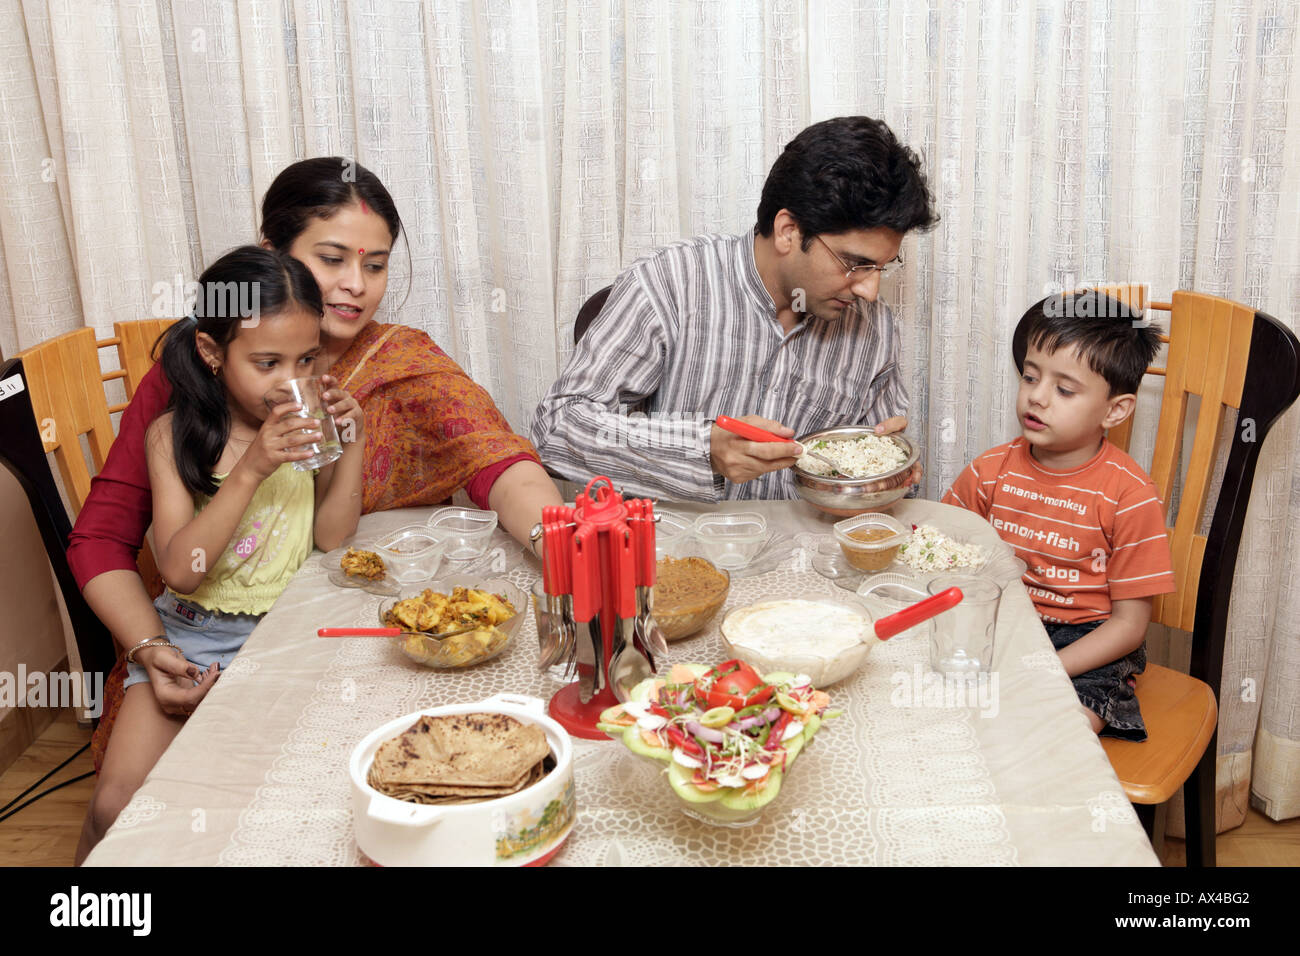 Family Eating Food At A Dining Table Stock Photo Royalty